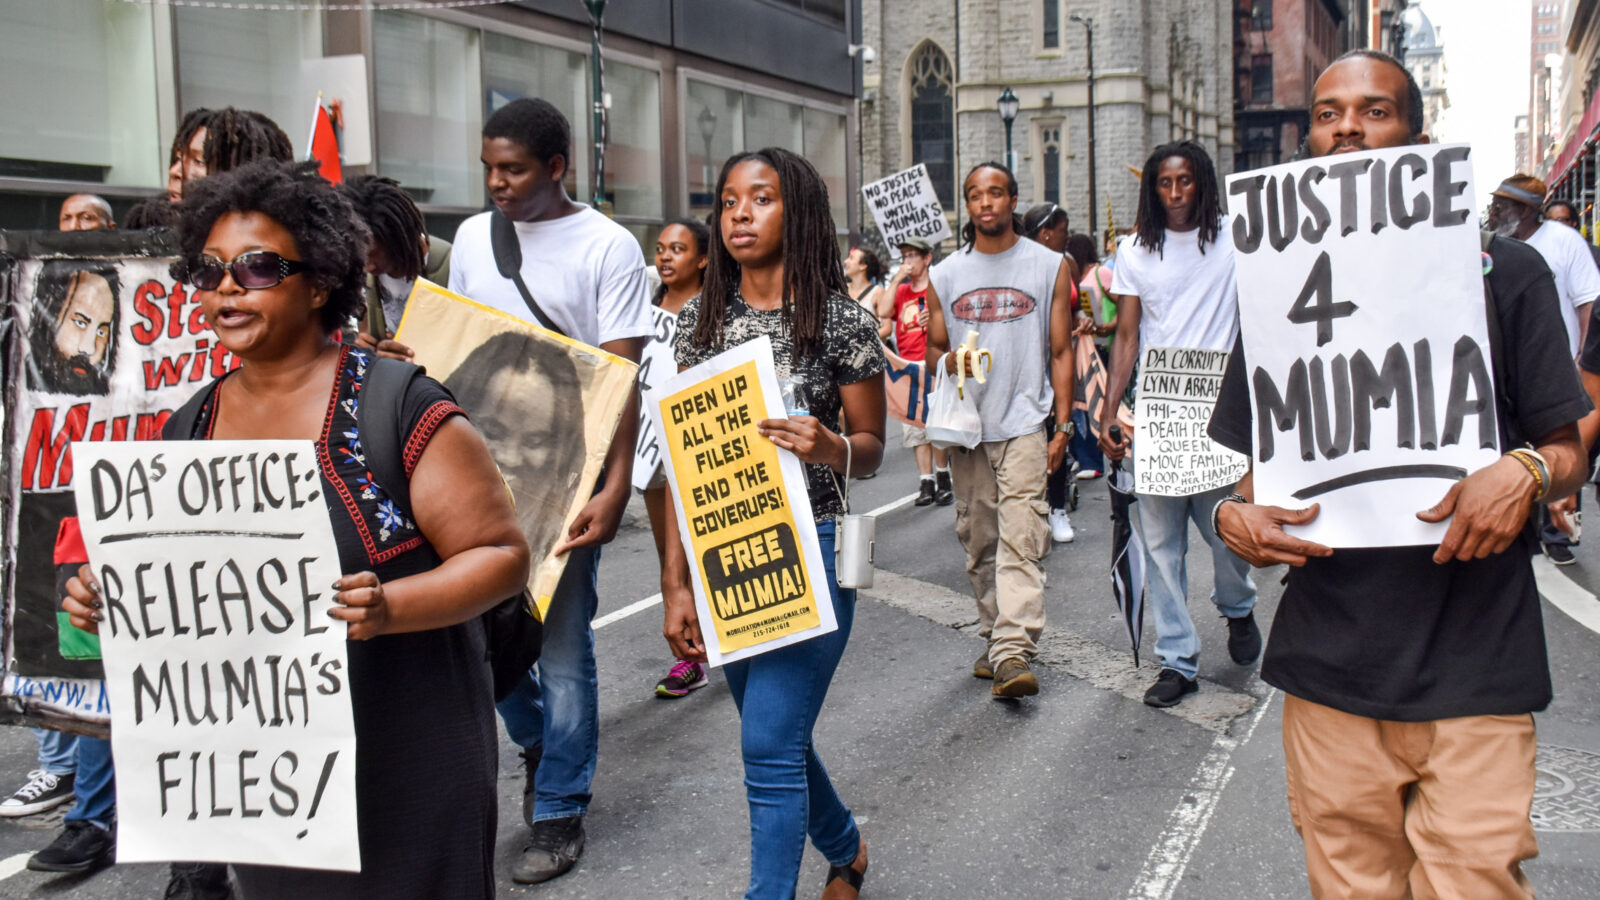 Protest for justice for Mumia Abu-Jamal. By Joe Piette